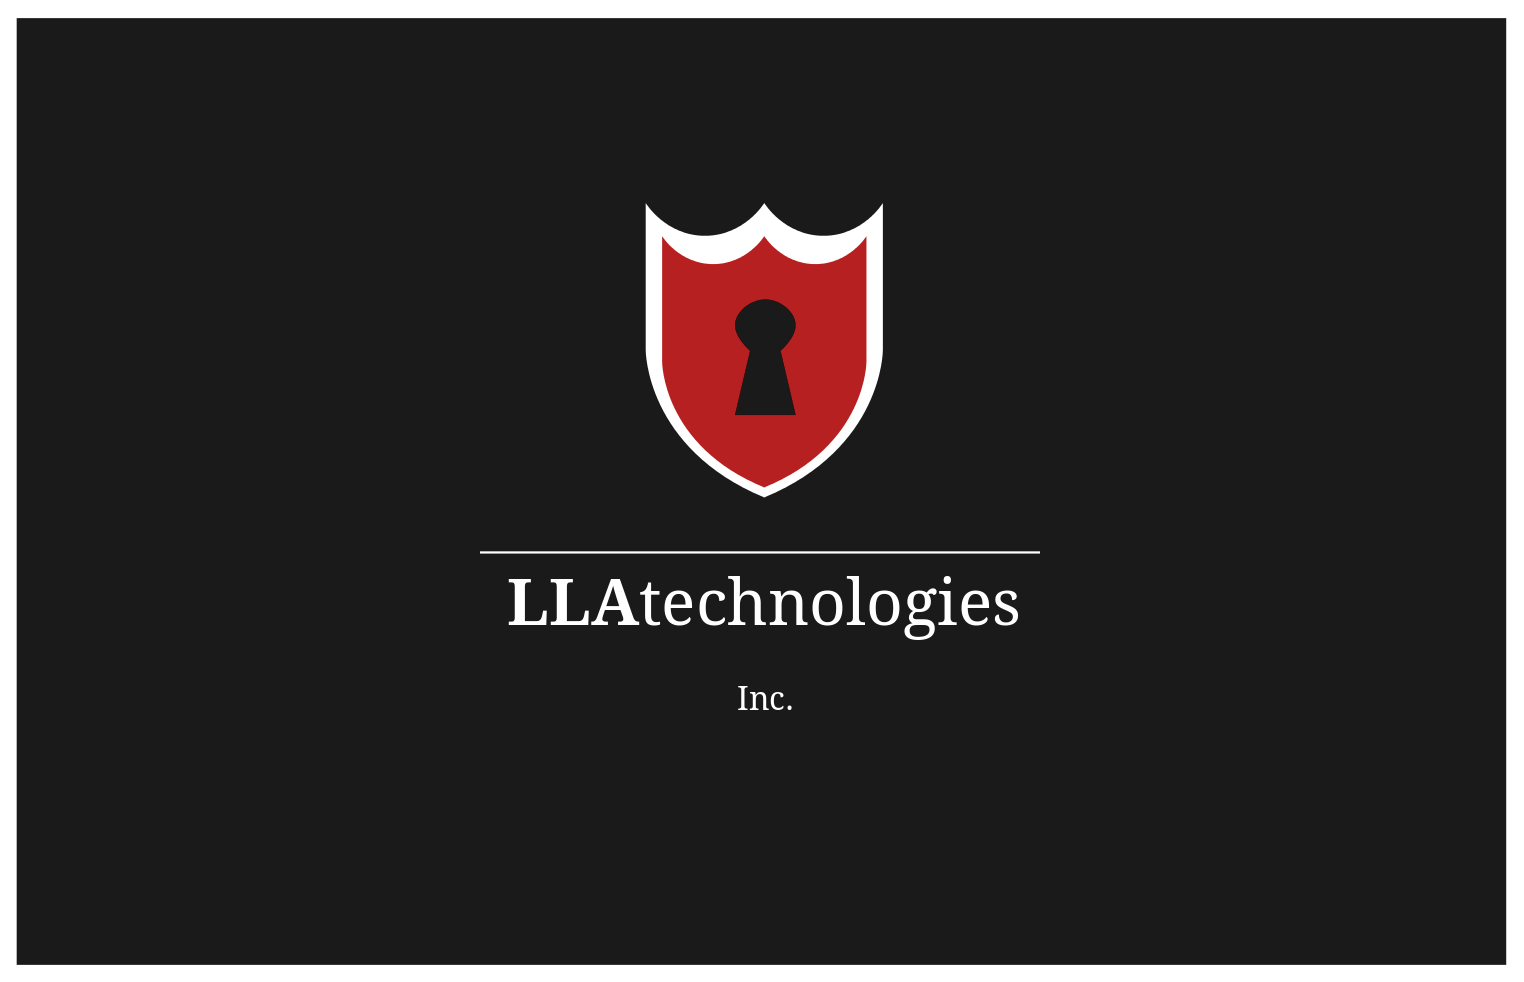 Logo Design by JaroslavProcka - Entry No. 72 in the Logo Design Contest Inspiring Logo Design for LLA Technologies Inc..